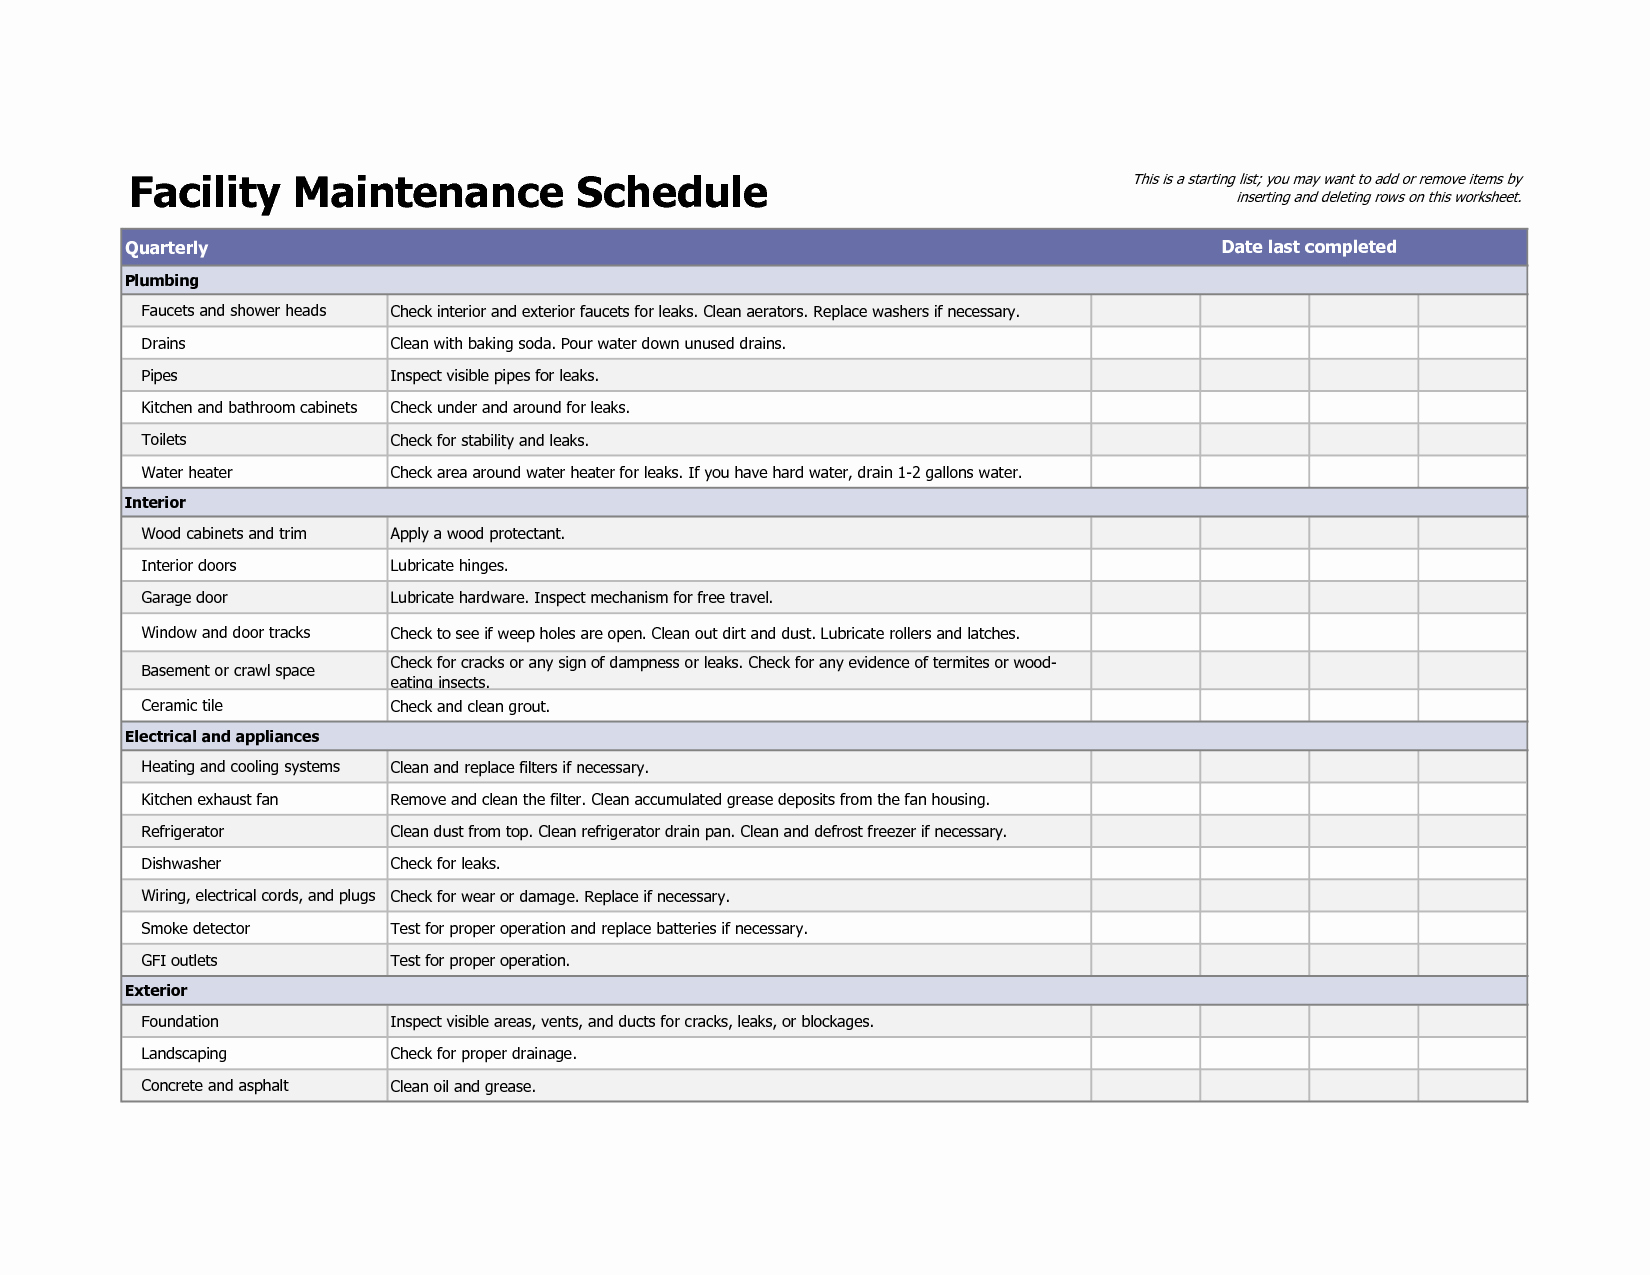 Preventive Maintenance Schedule Template Excel Awesome Building Maintenance Schedule Template Excel